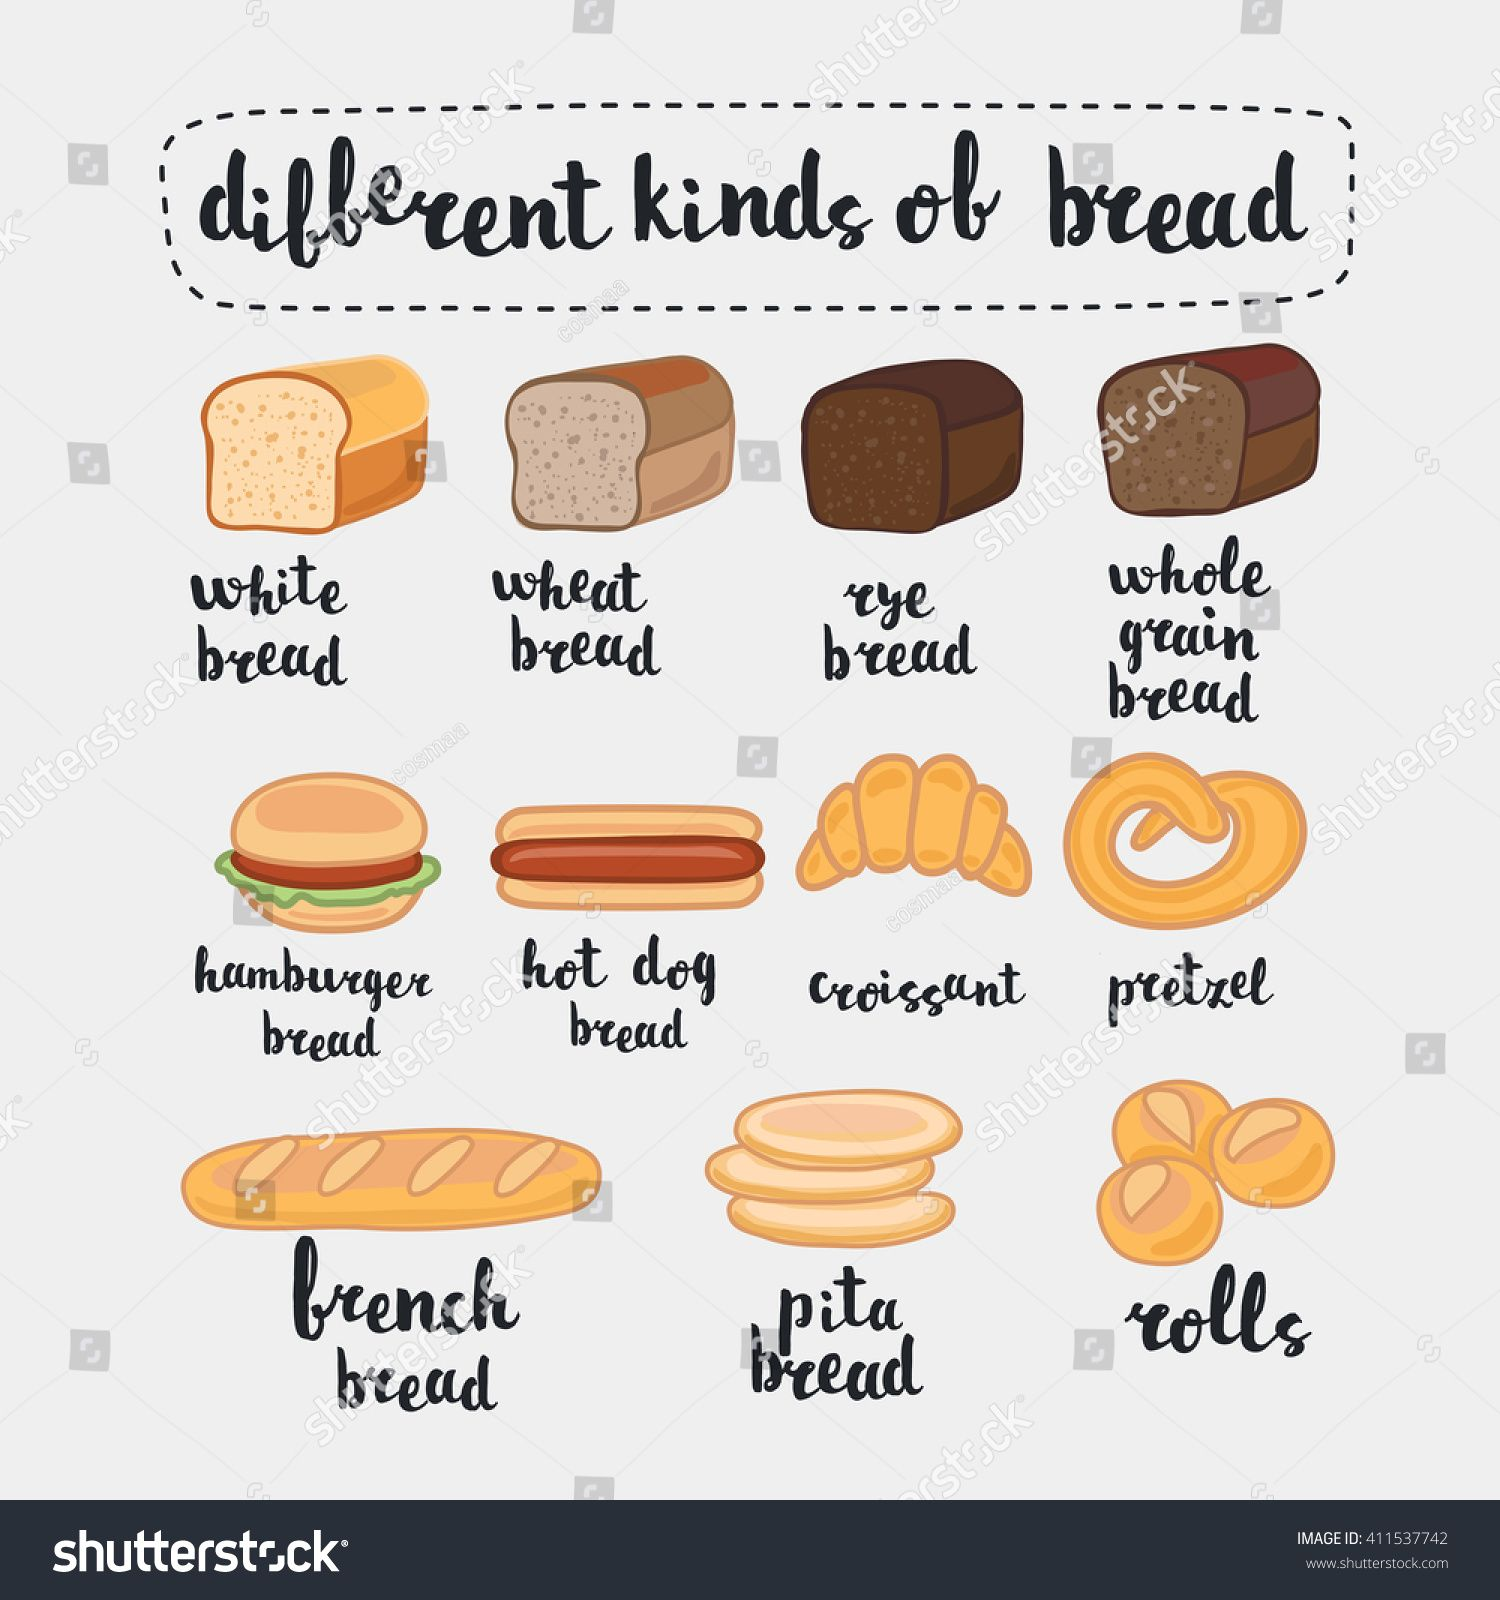 Bread Kinds